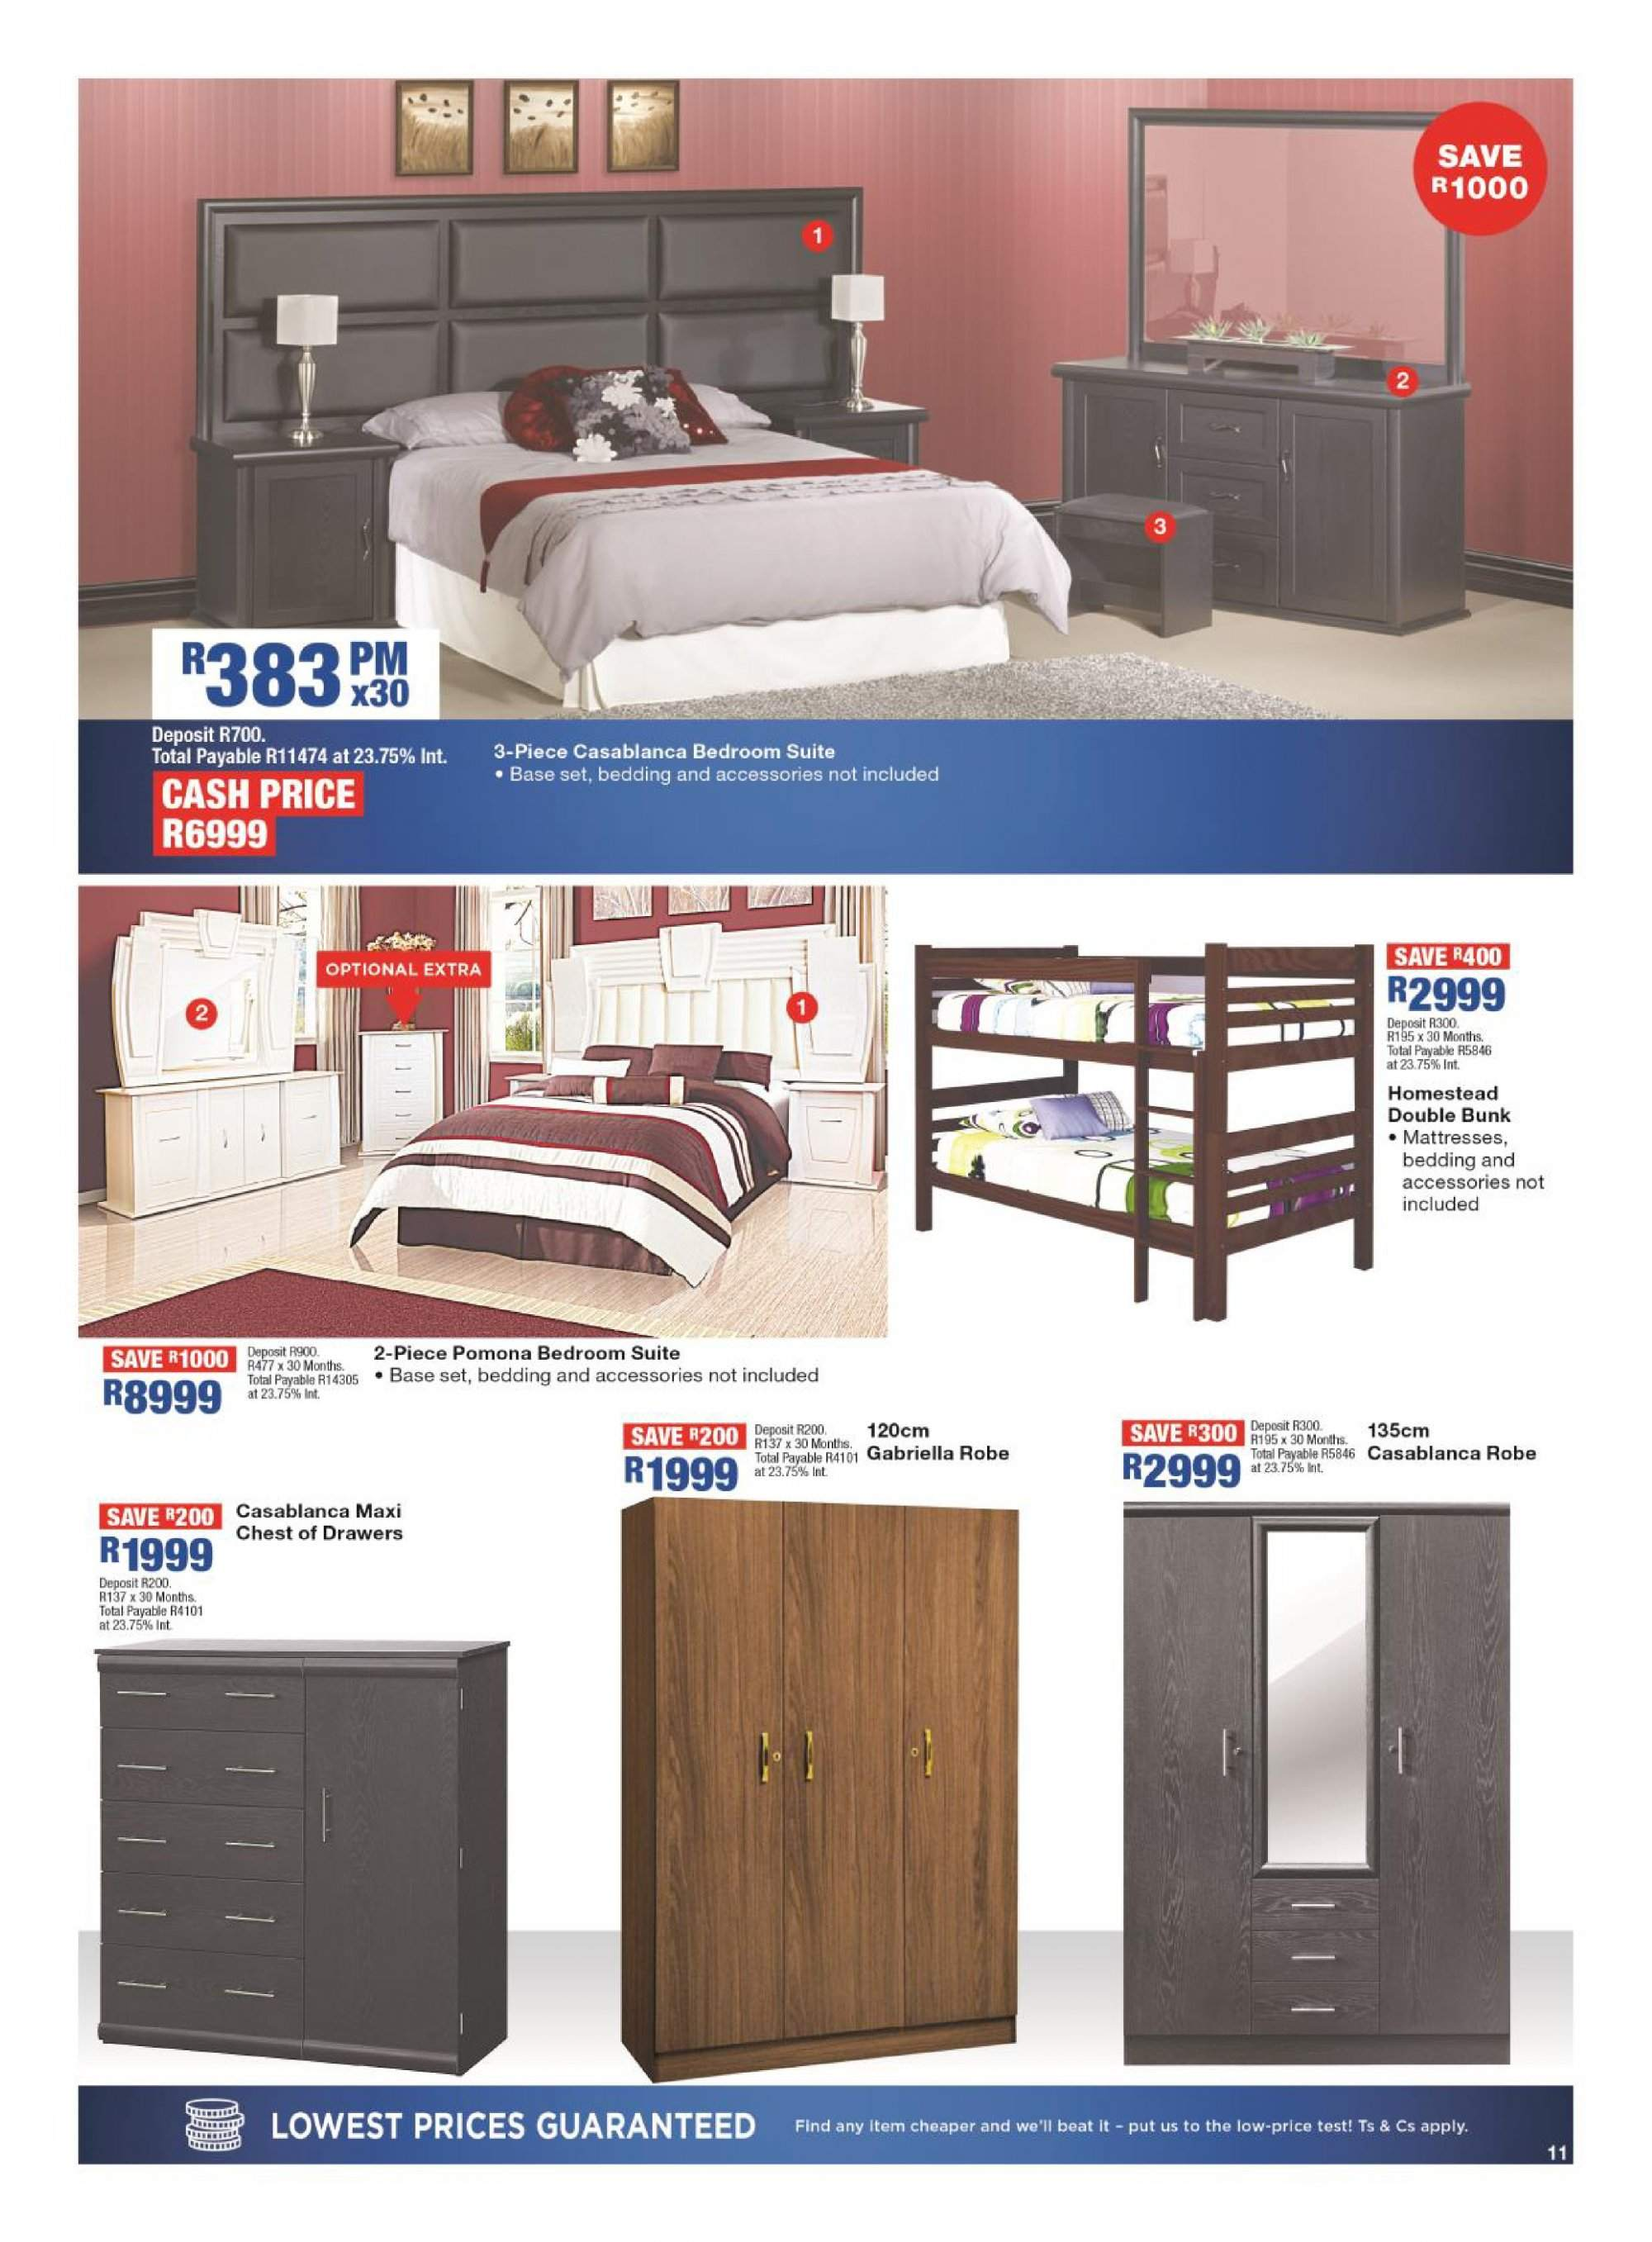 Picture of: Ok Furniture Catalogue 01 22 2019 02 03 2019 Page 11 My Catalogue